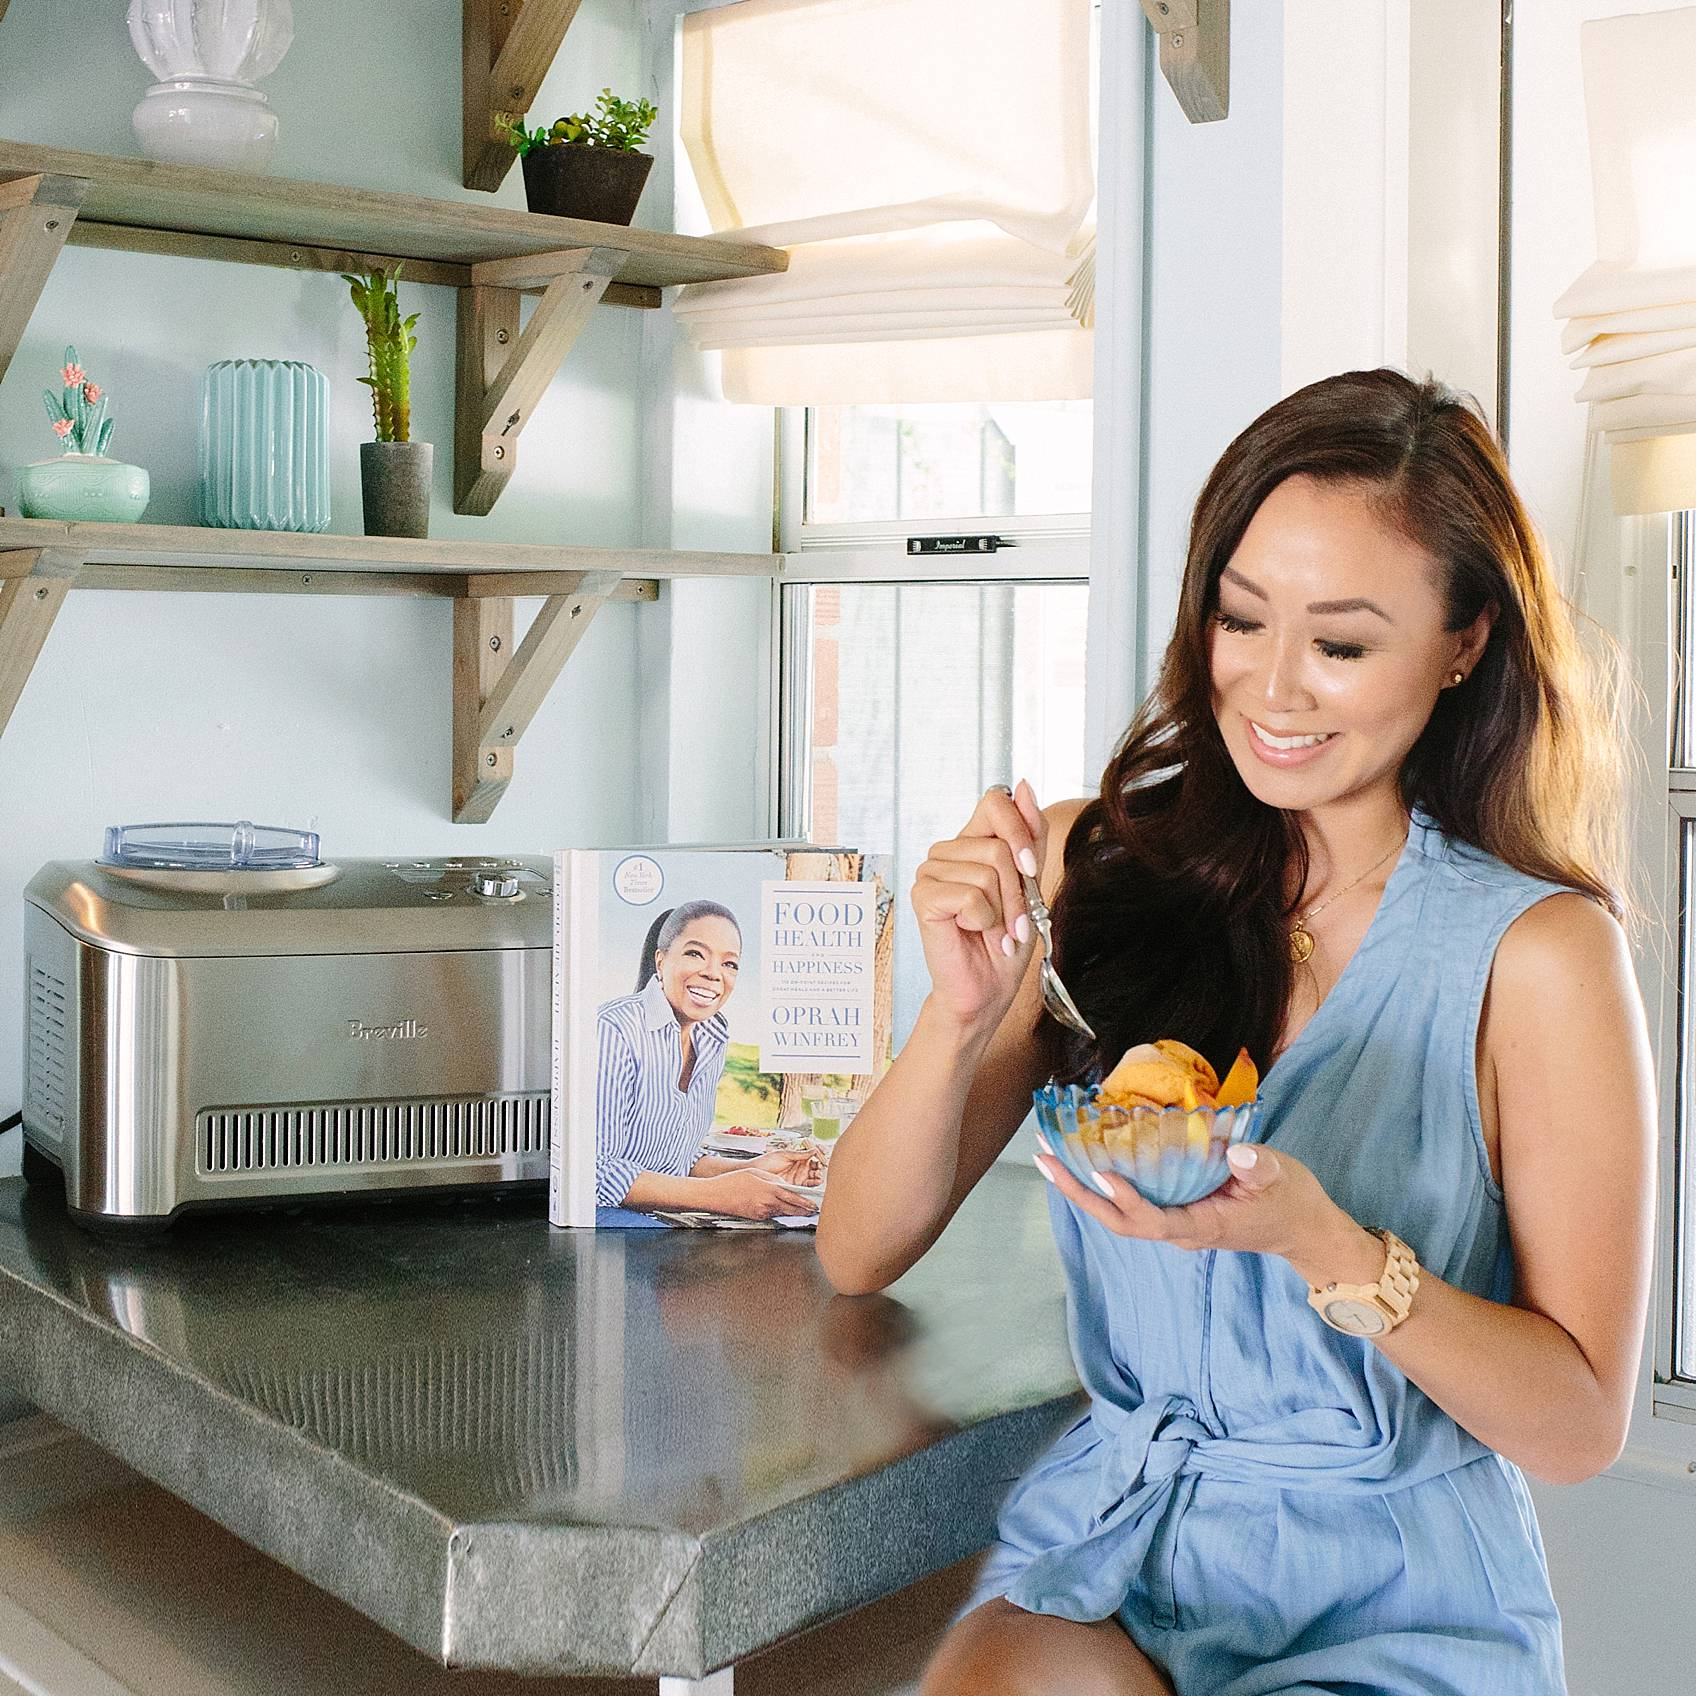 Blogger Diana Elizabeth sitting on stool eating peach sorbet she made with Breville smart ice cream maker